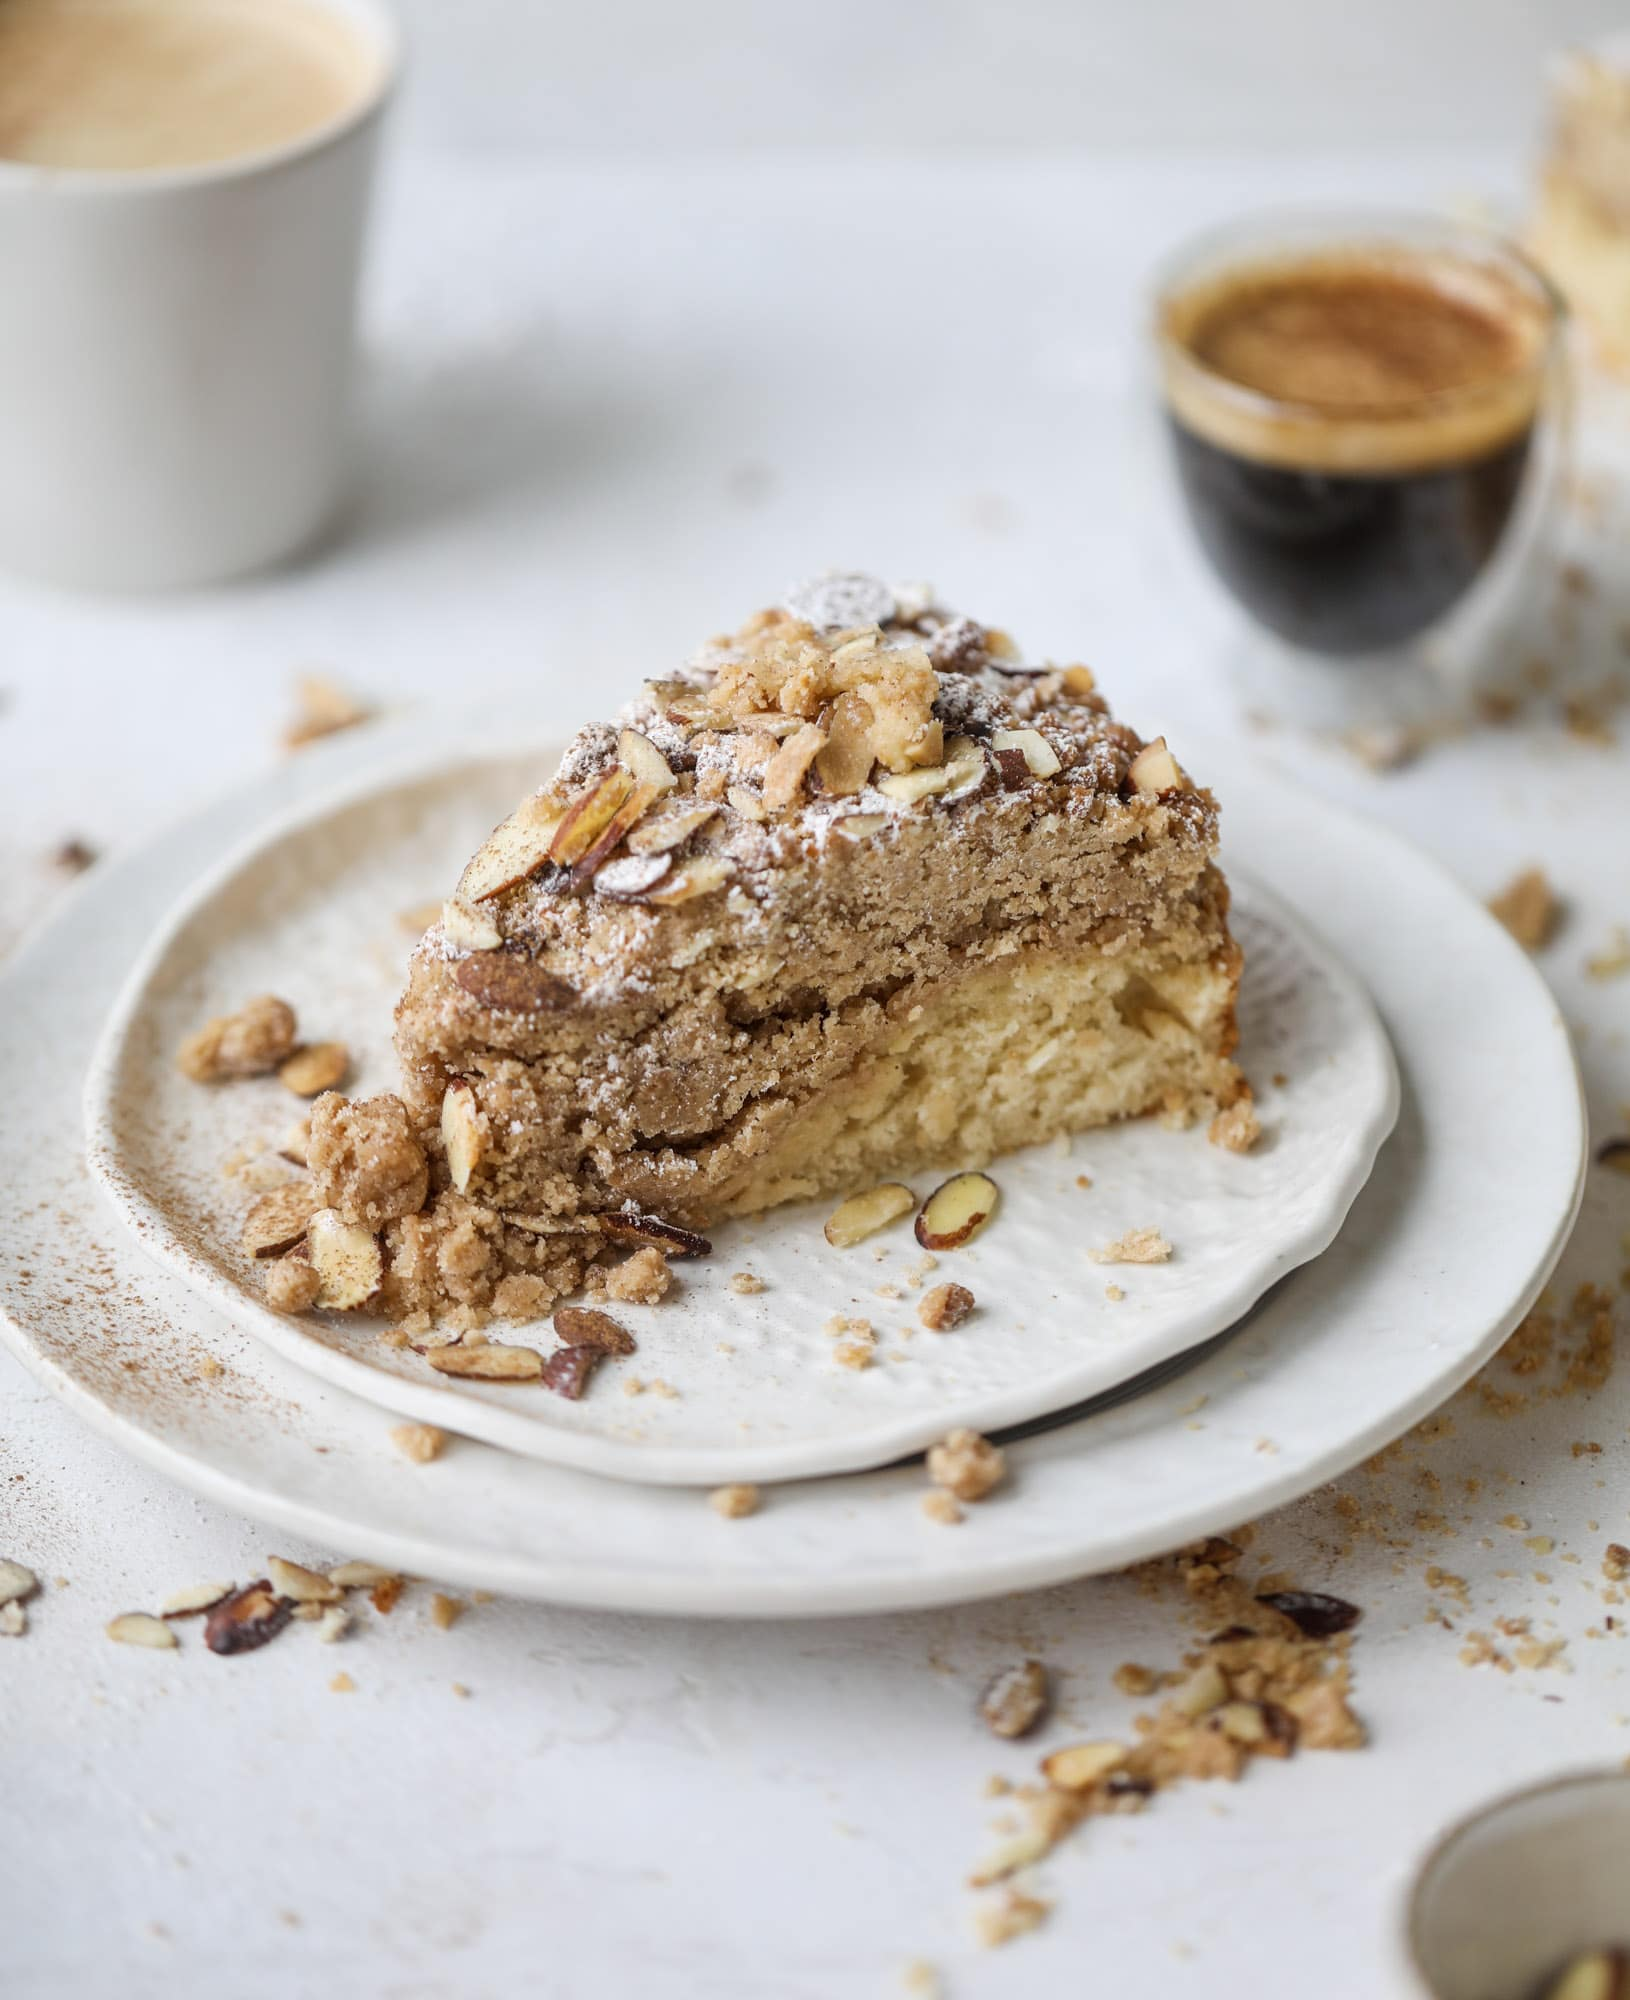 This almond crumb cake is so delicious and perfect for breakfast or dessert! It's full of delicious almond flavor and crunch and the crumb on top is so thick and perfect. It's like an almond croissant on steroids. I howsweeteats.com #almond #crumb #cake